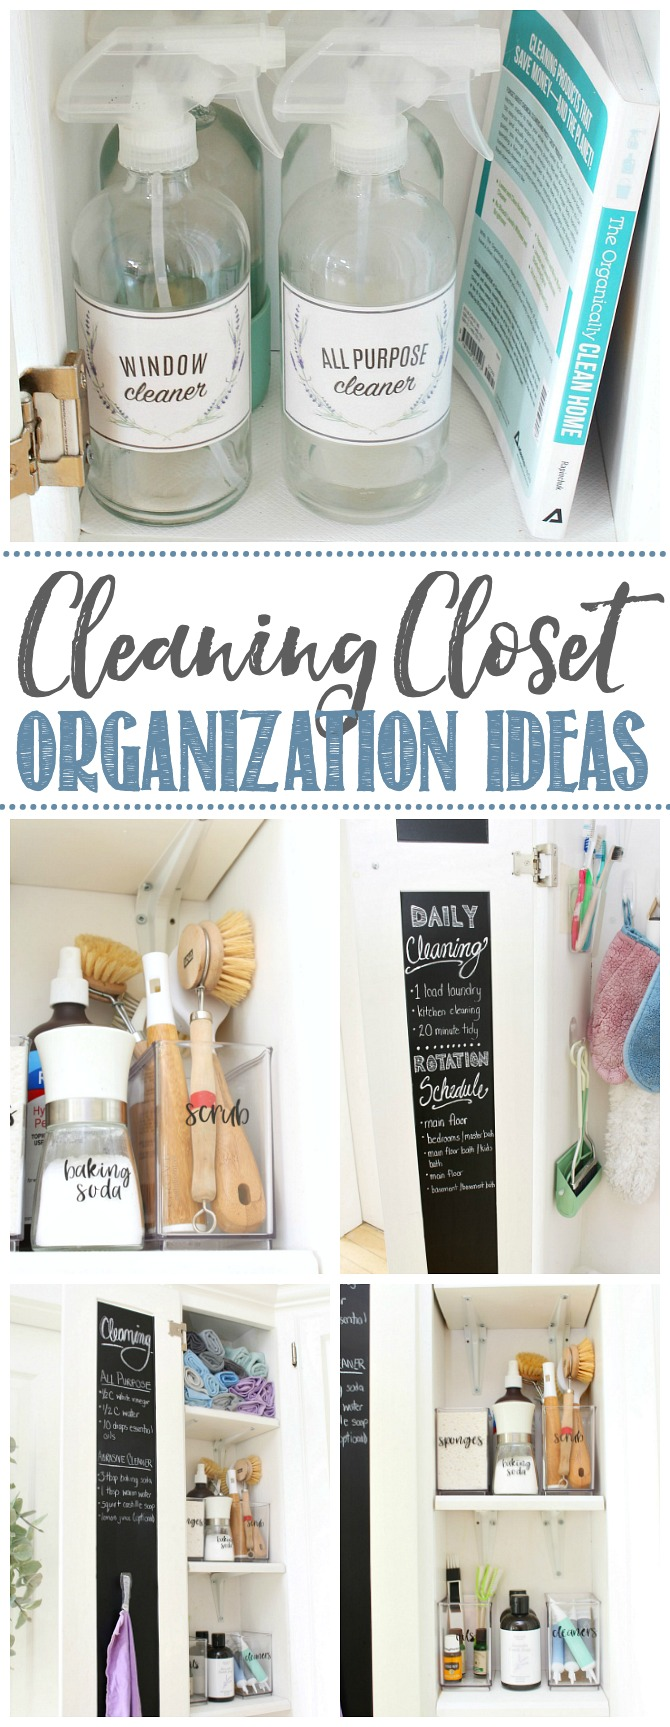 Organized cleaning closet with green cleaning products.